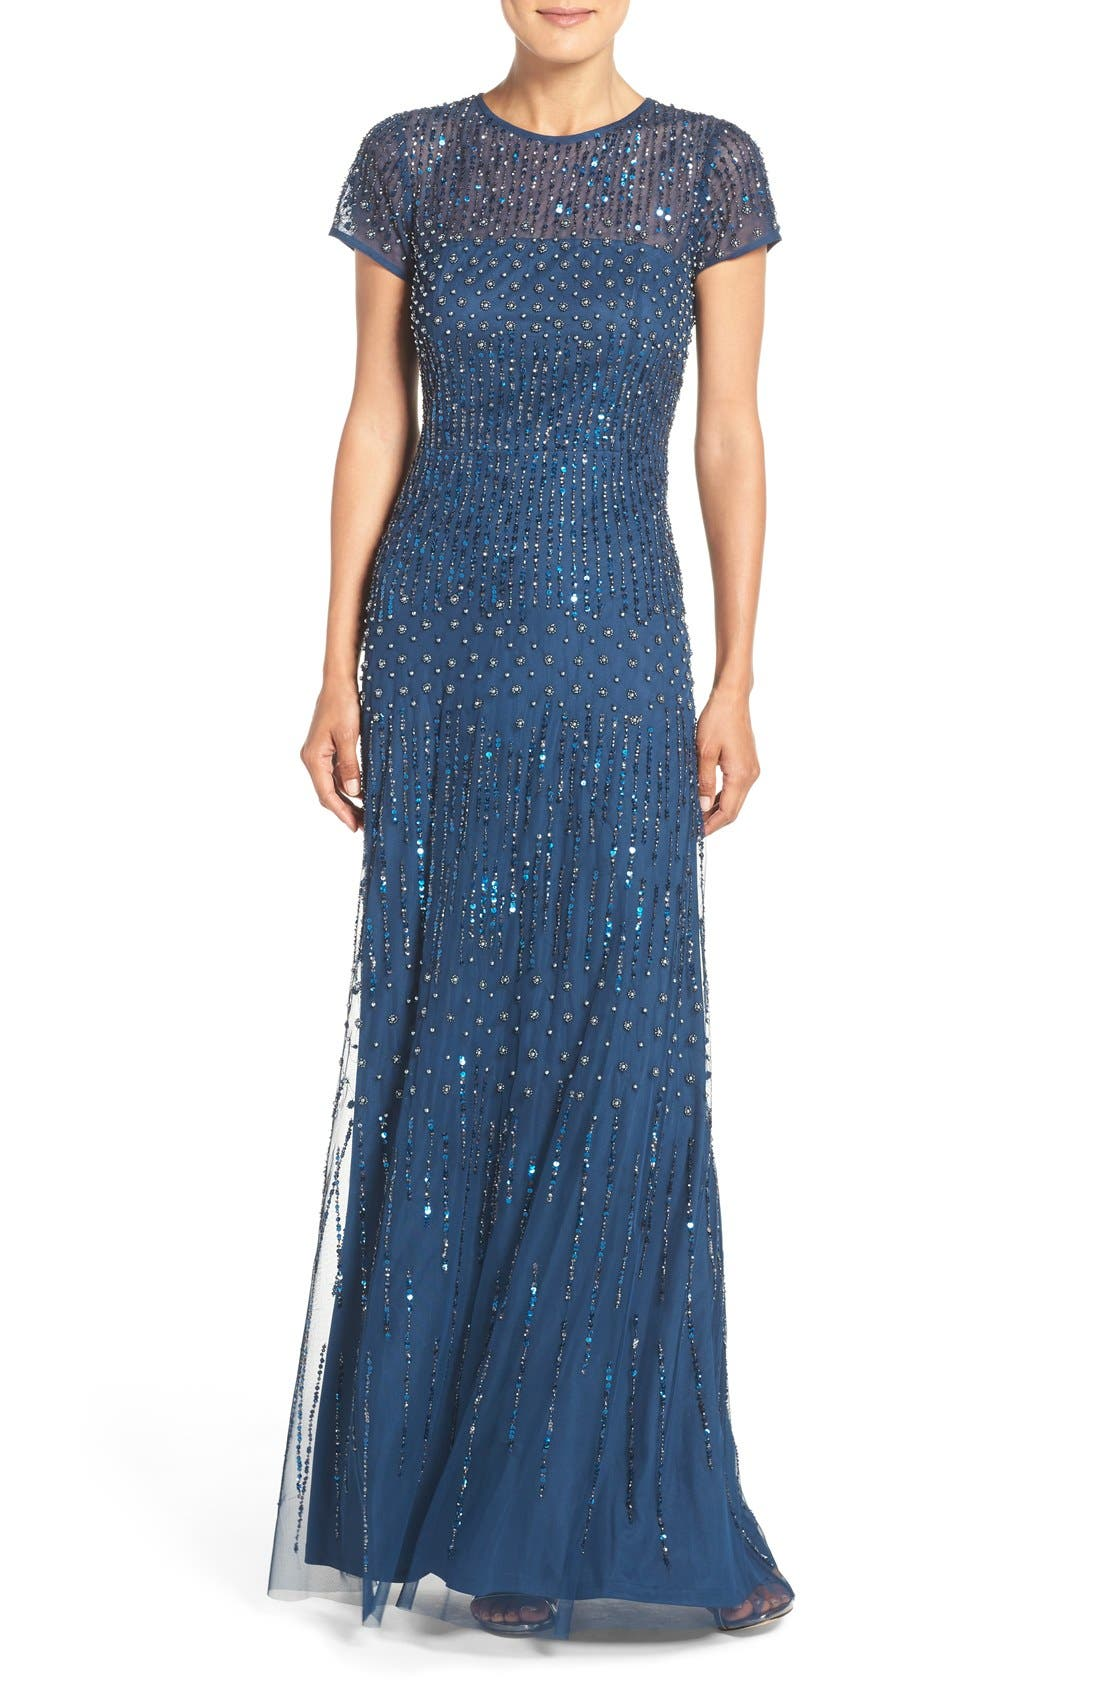 Main Image - Adrianna Papell Embellished Mesh Gown (Regular & Petite)